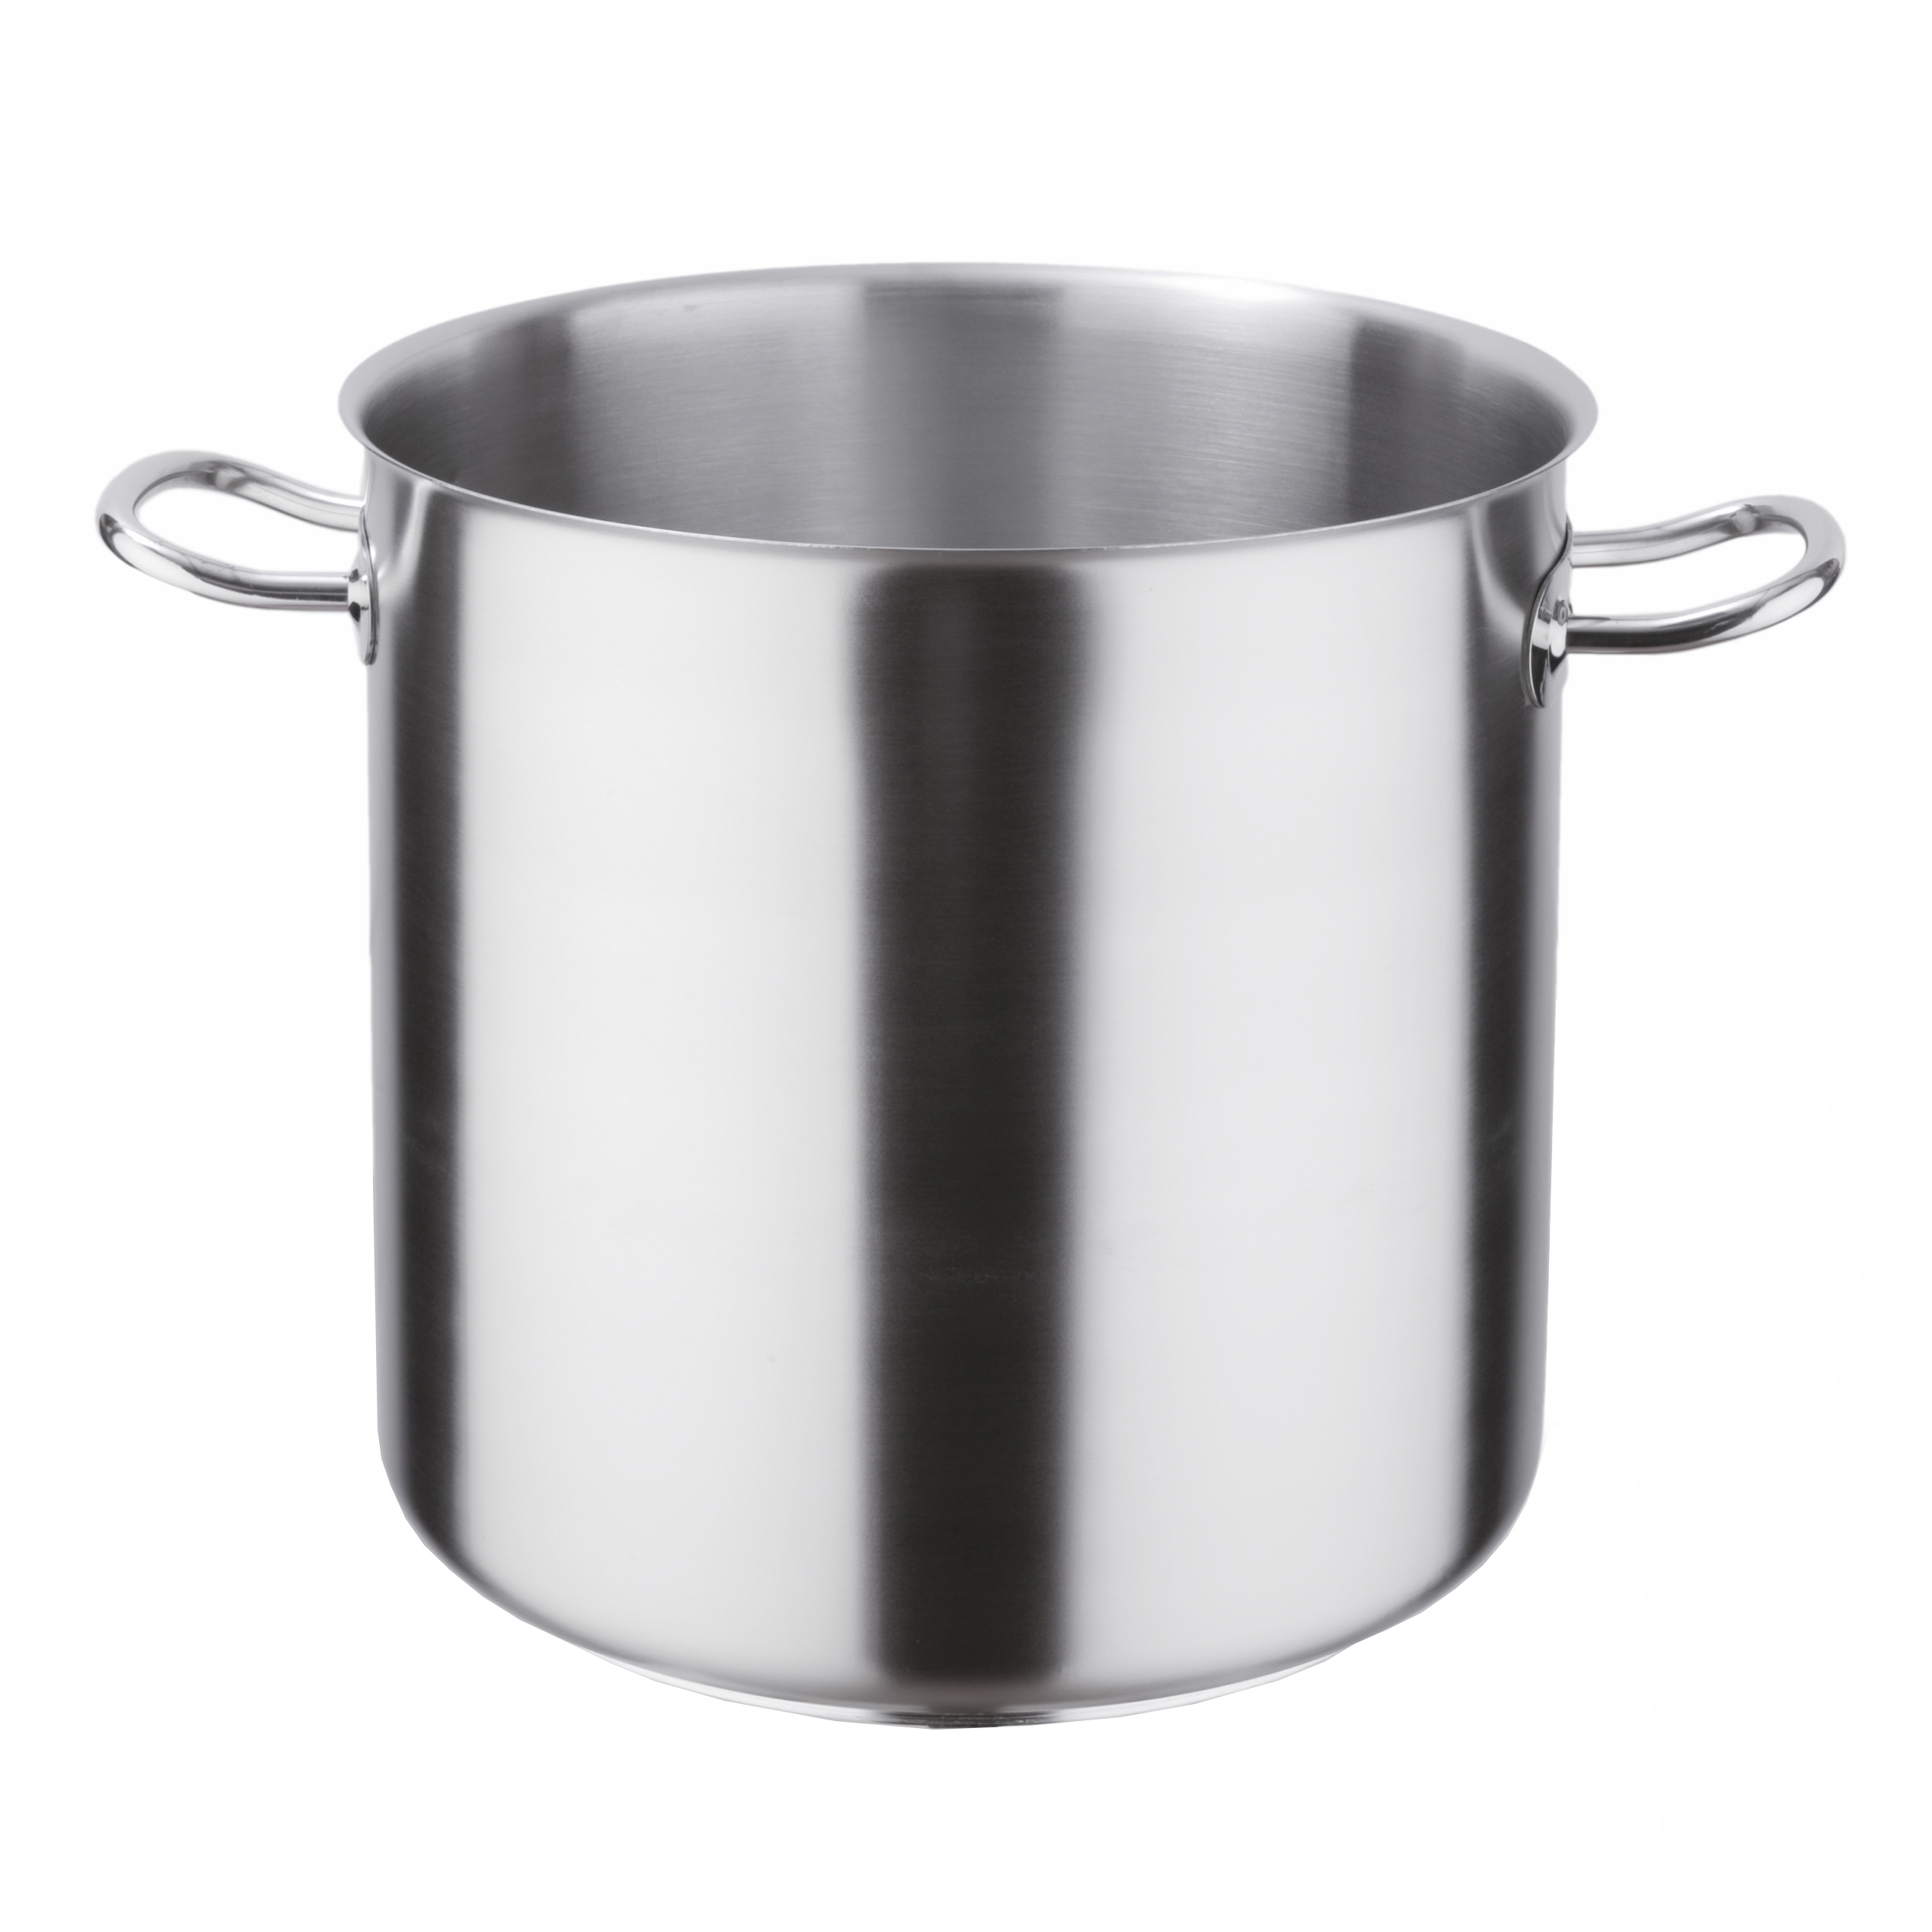 Vollrath V218040 stock pot